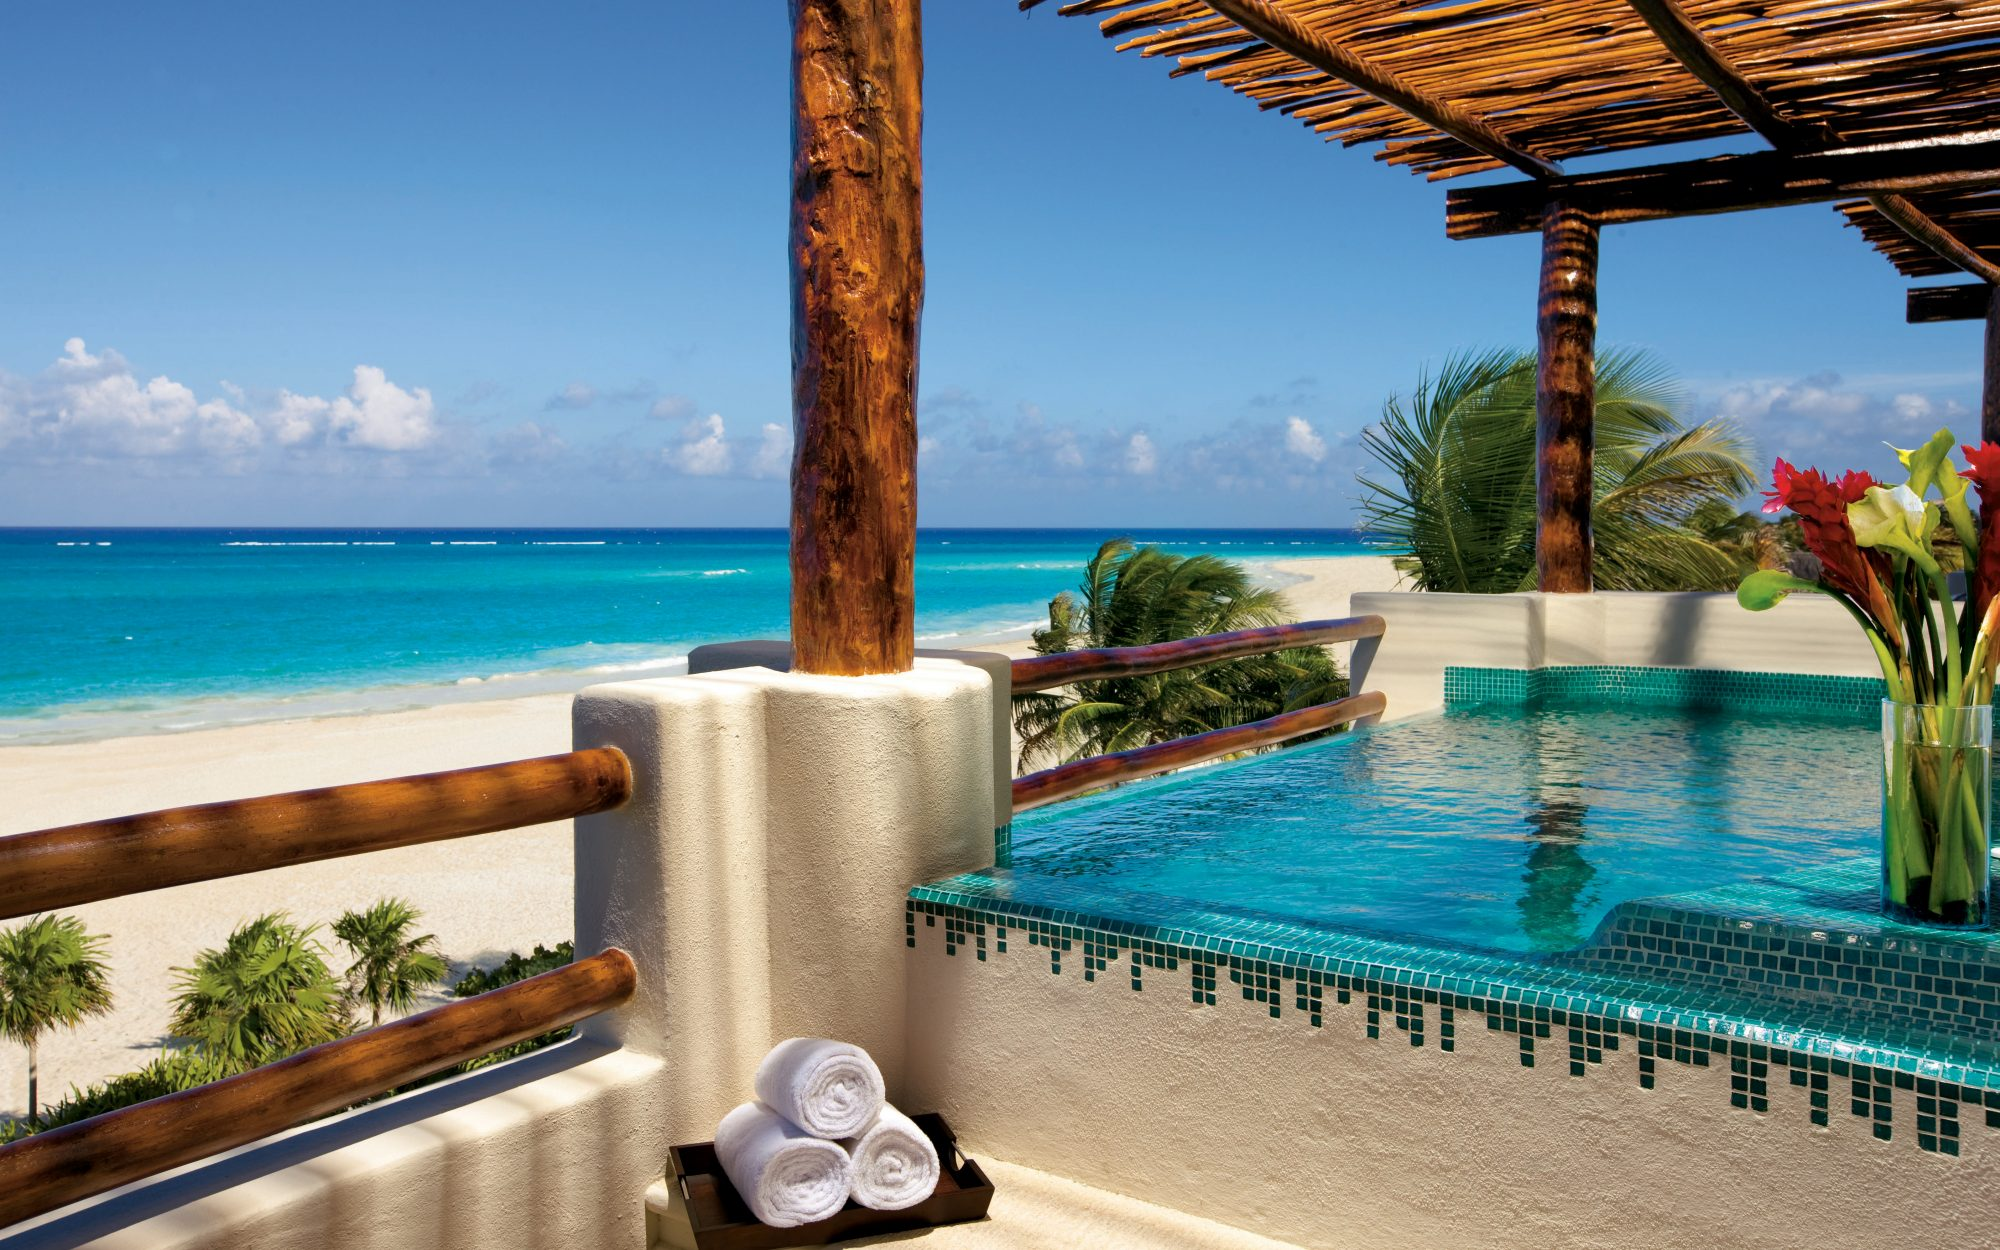 Best Mexico Beach Resorts: Secrets Maroma Beach